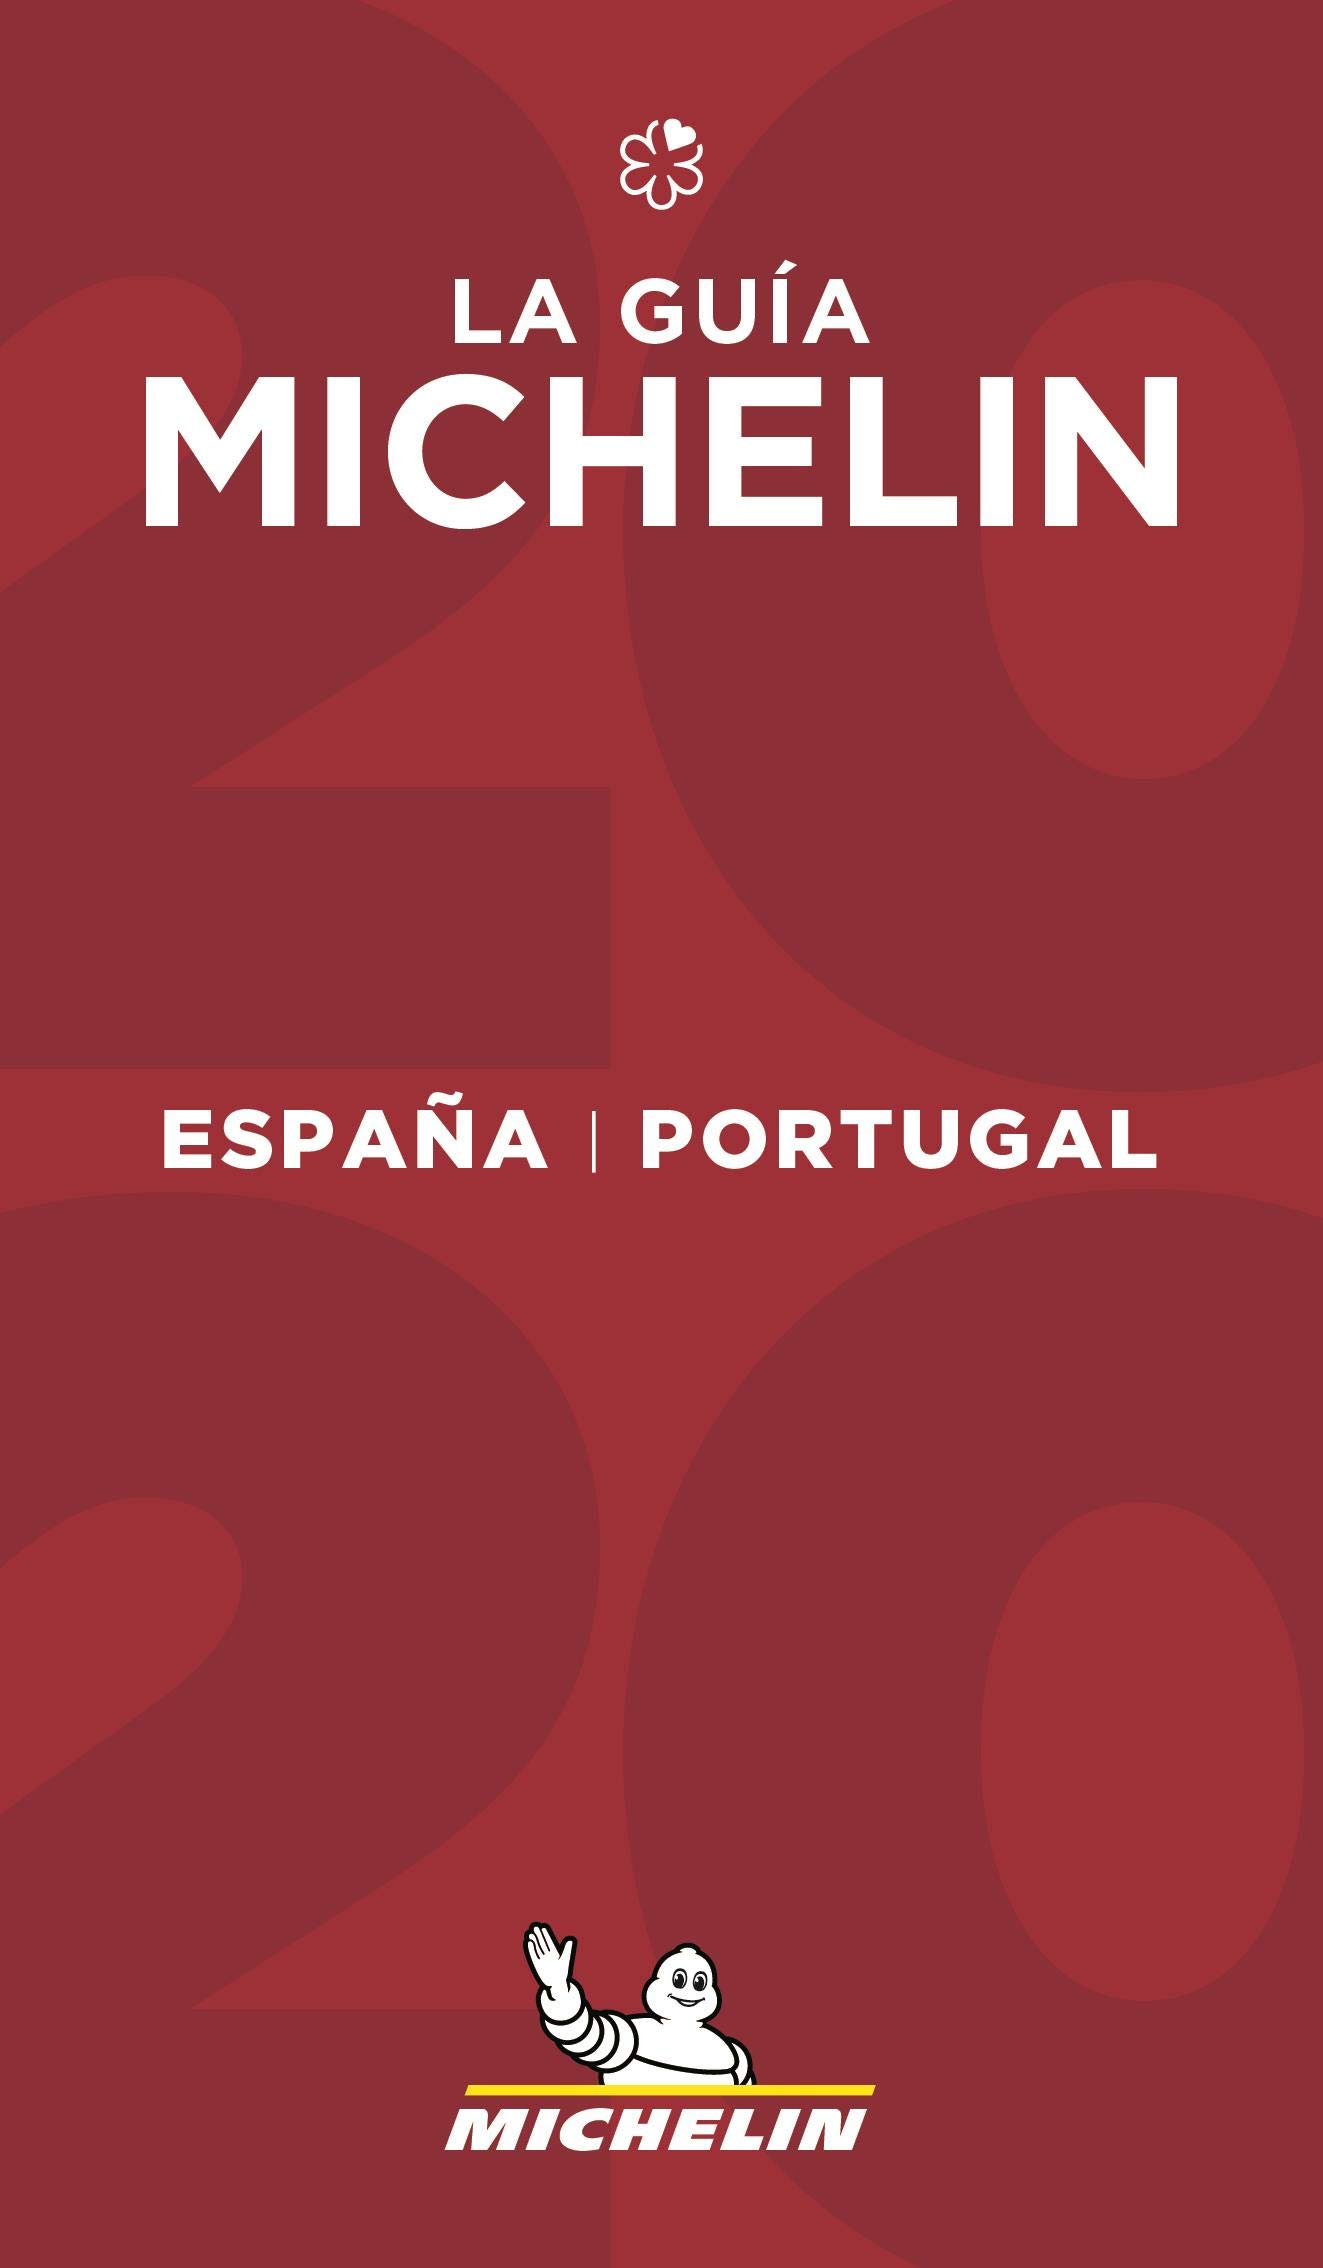 La Guía MICHELIN España & Portugal 2020: Hotels & Restaurants La guida Michelin: Amazon.es: Vv.Aa, Vv.Aa: Libros